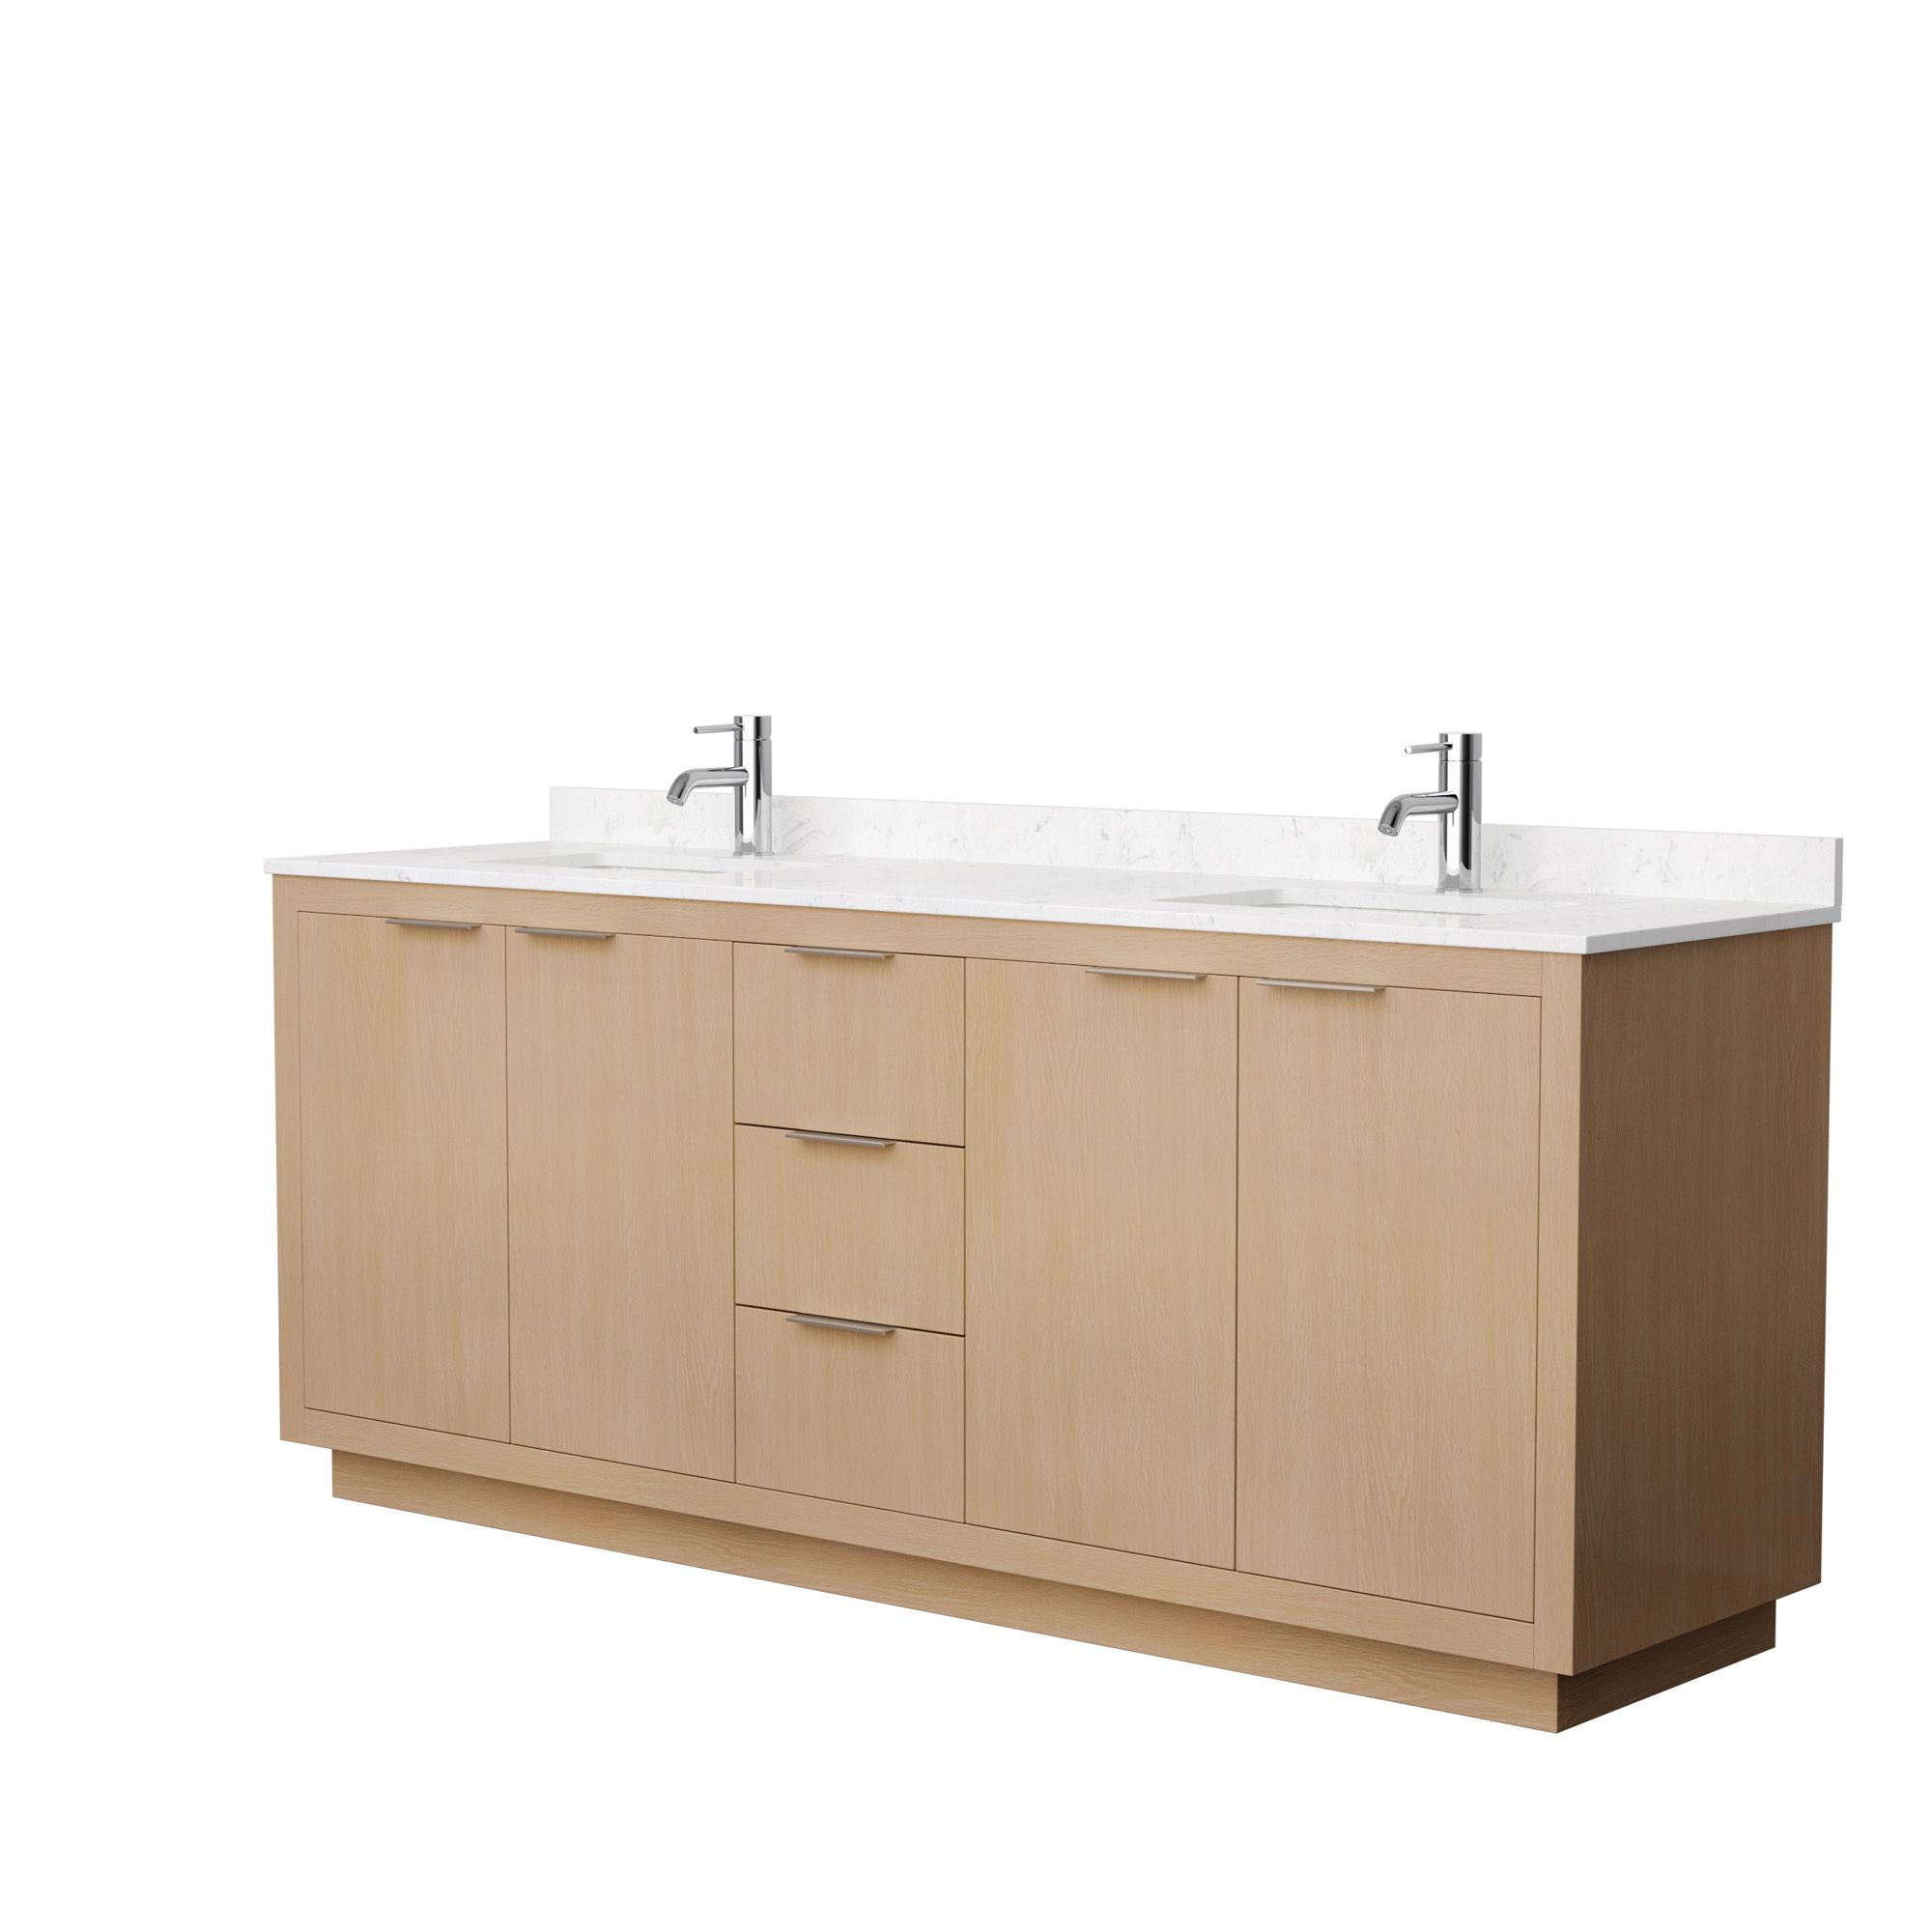 """80"""" Double Bathroom Vanity in Light Straw with Countertop and Hardware Options"""